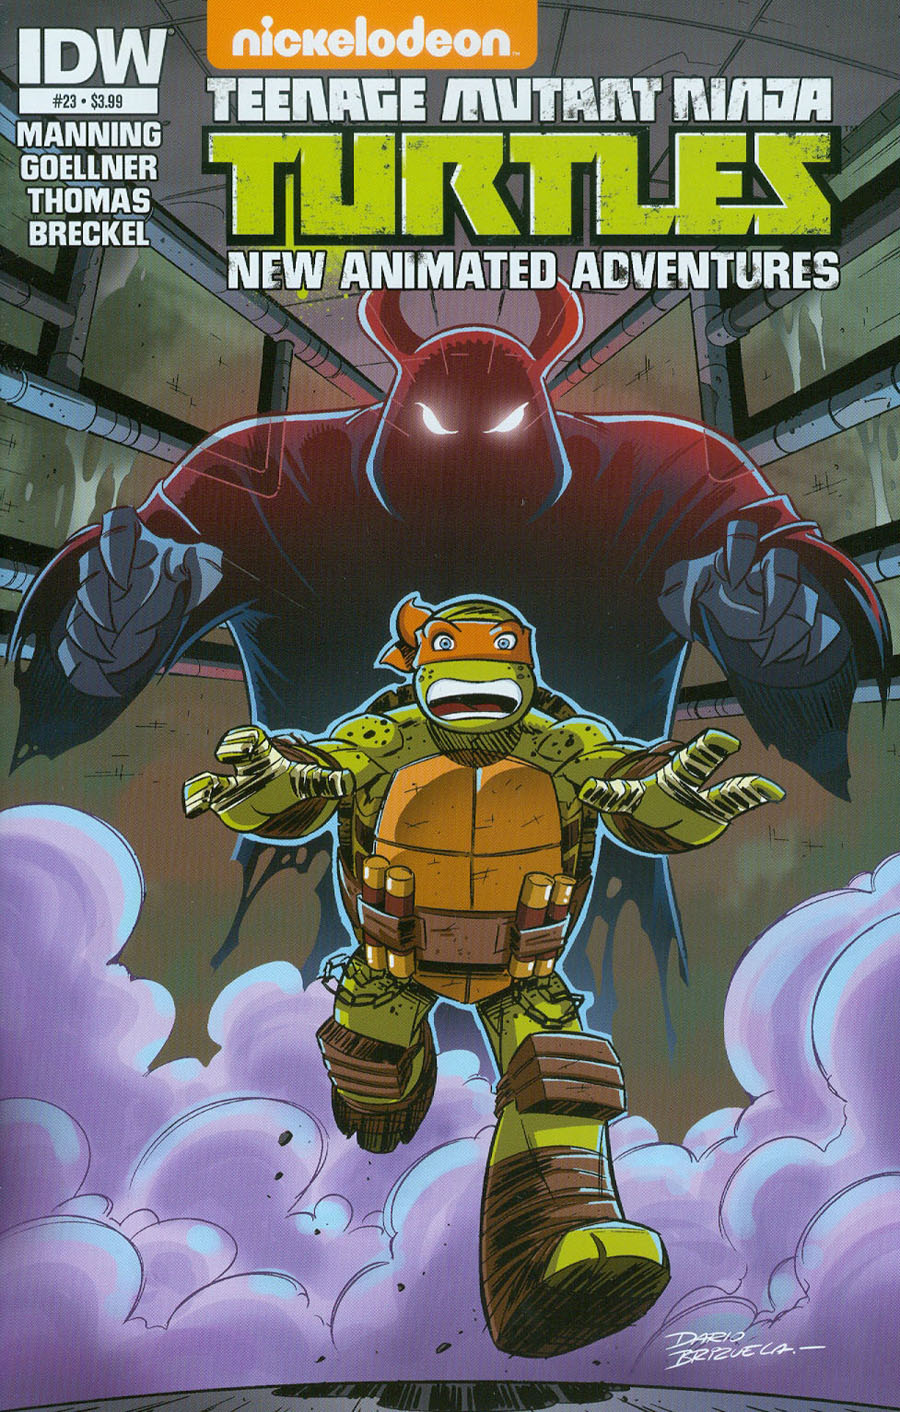 Teenage Mutant Ninja Turtles New Animated Adventures #23 Cover A Regular Dario Brizuela Cover